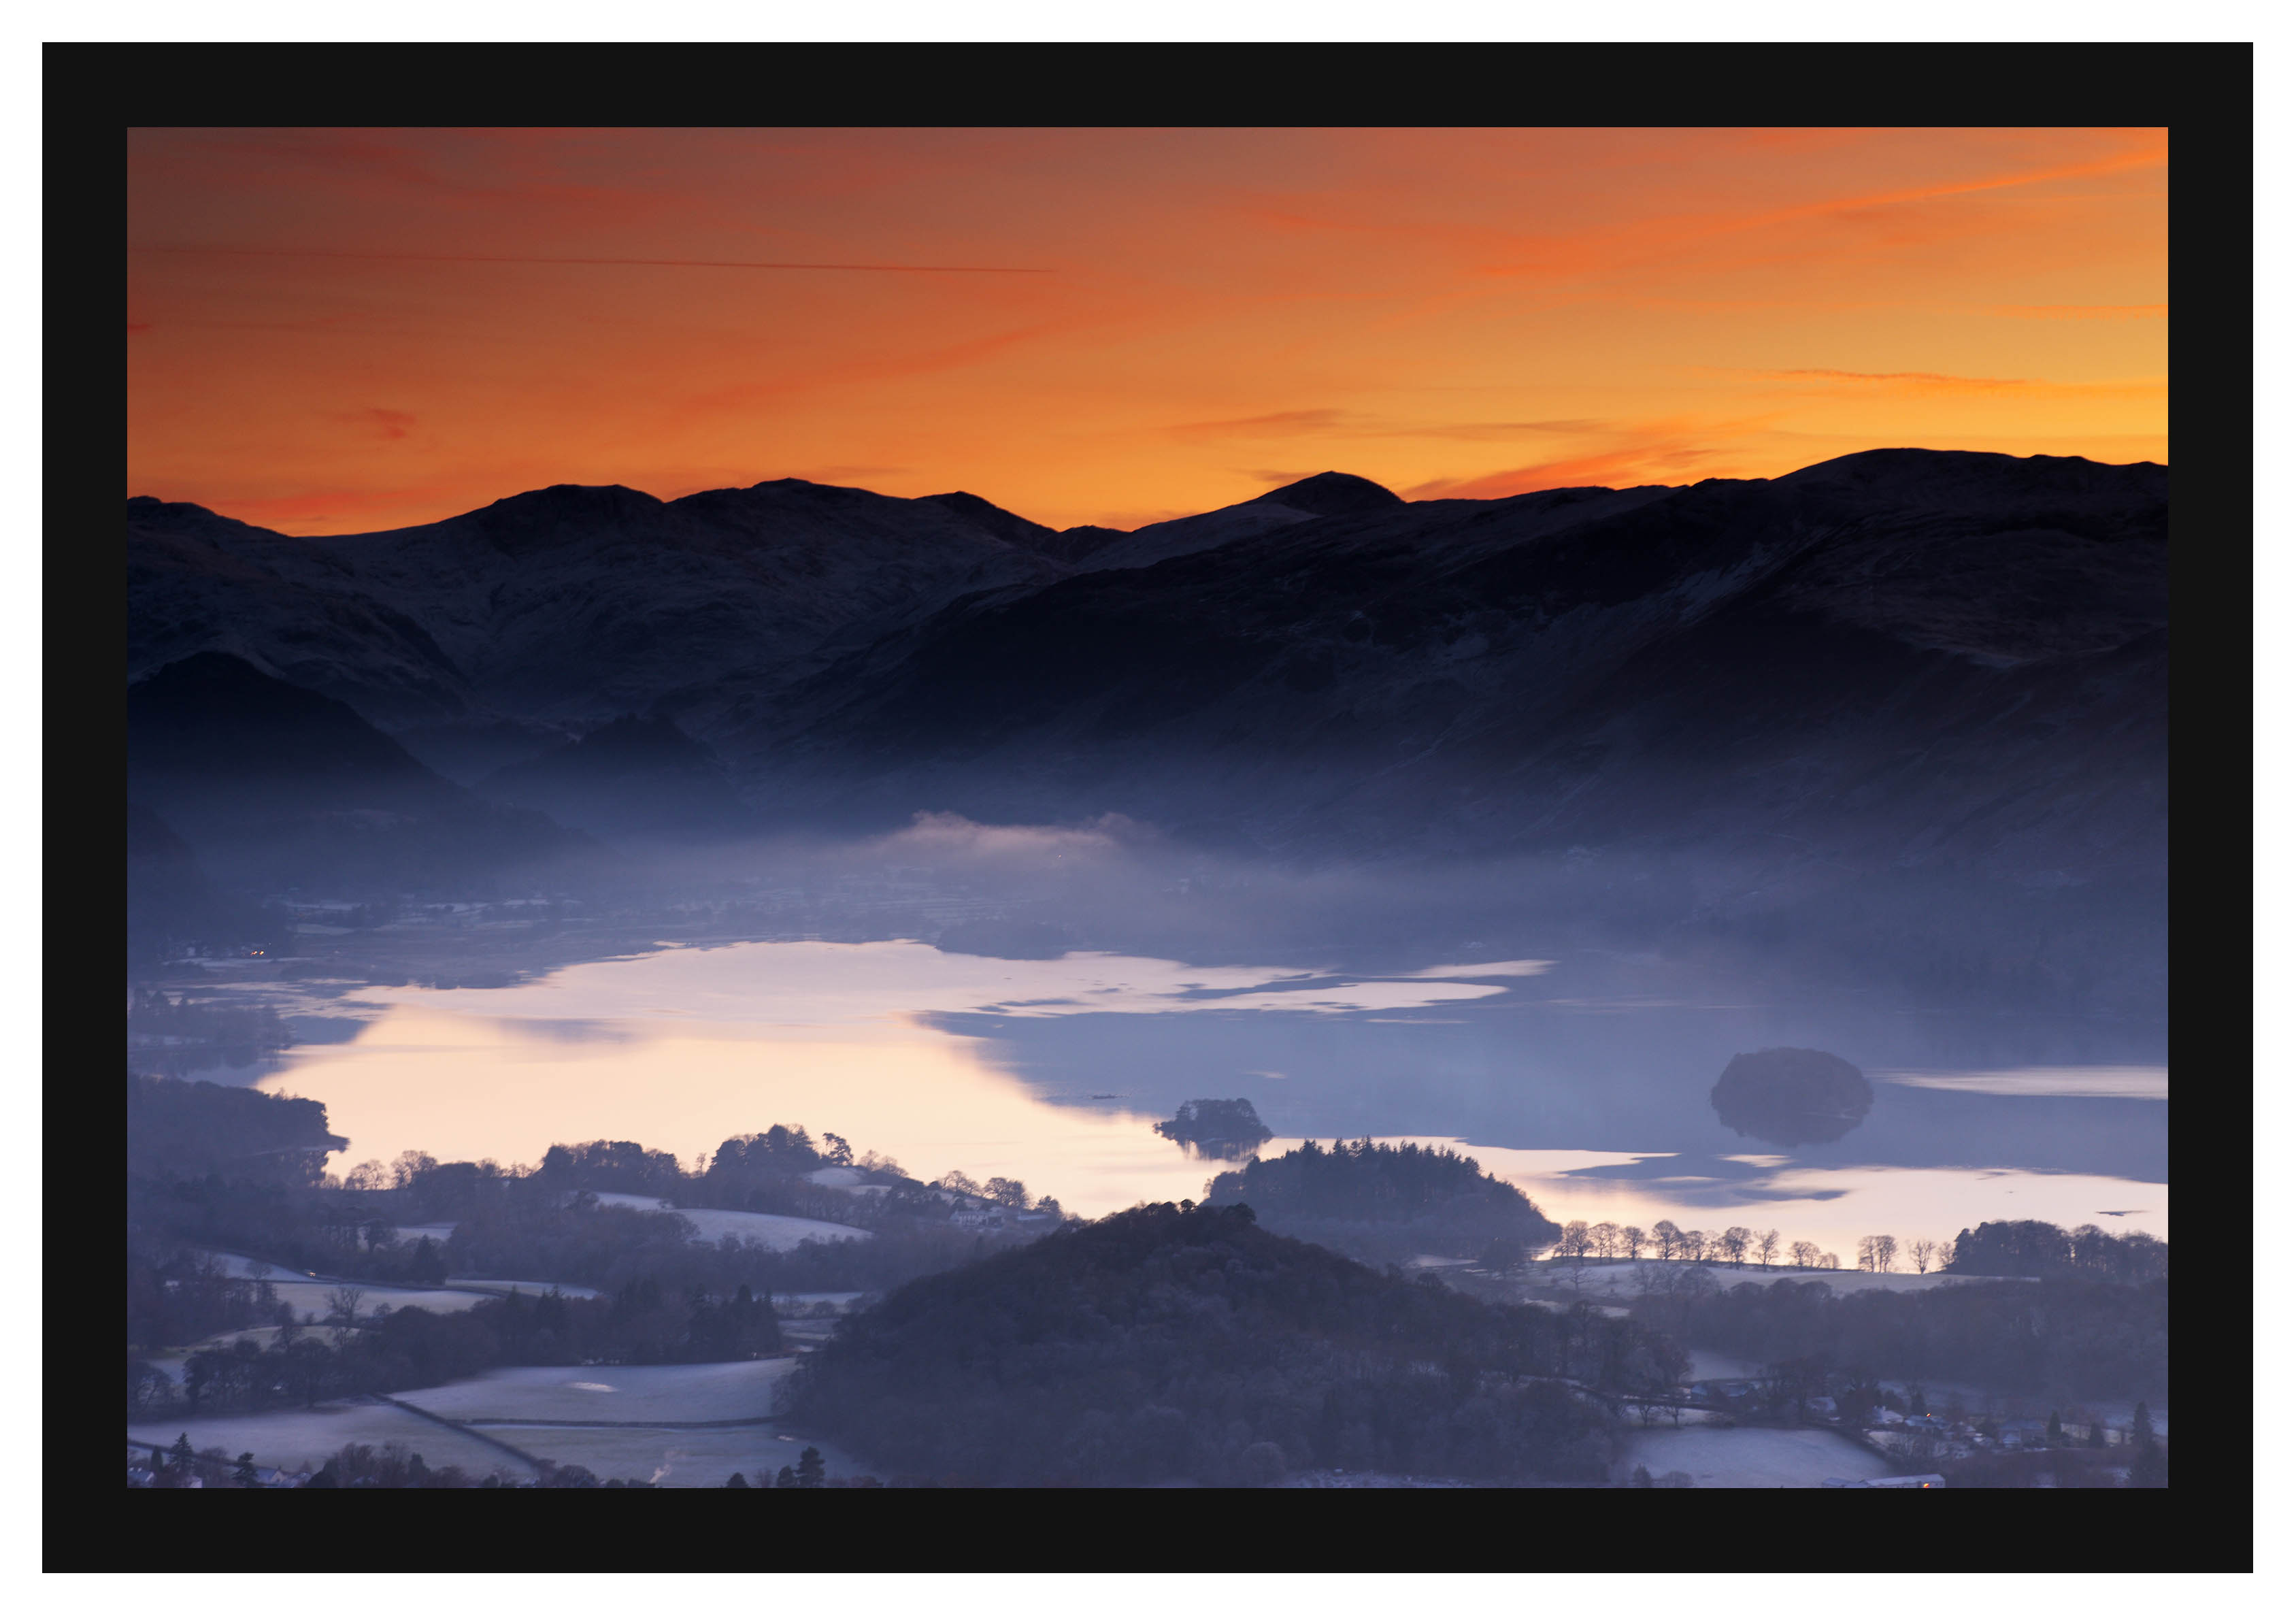 46E8181 Sunset over Derwent Water and the Newlands Valley from Latrigg